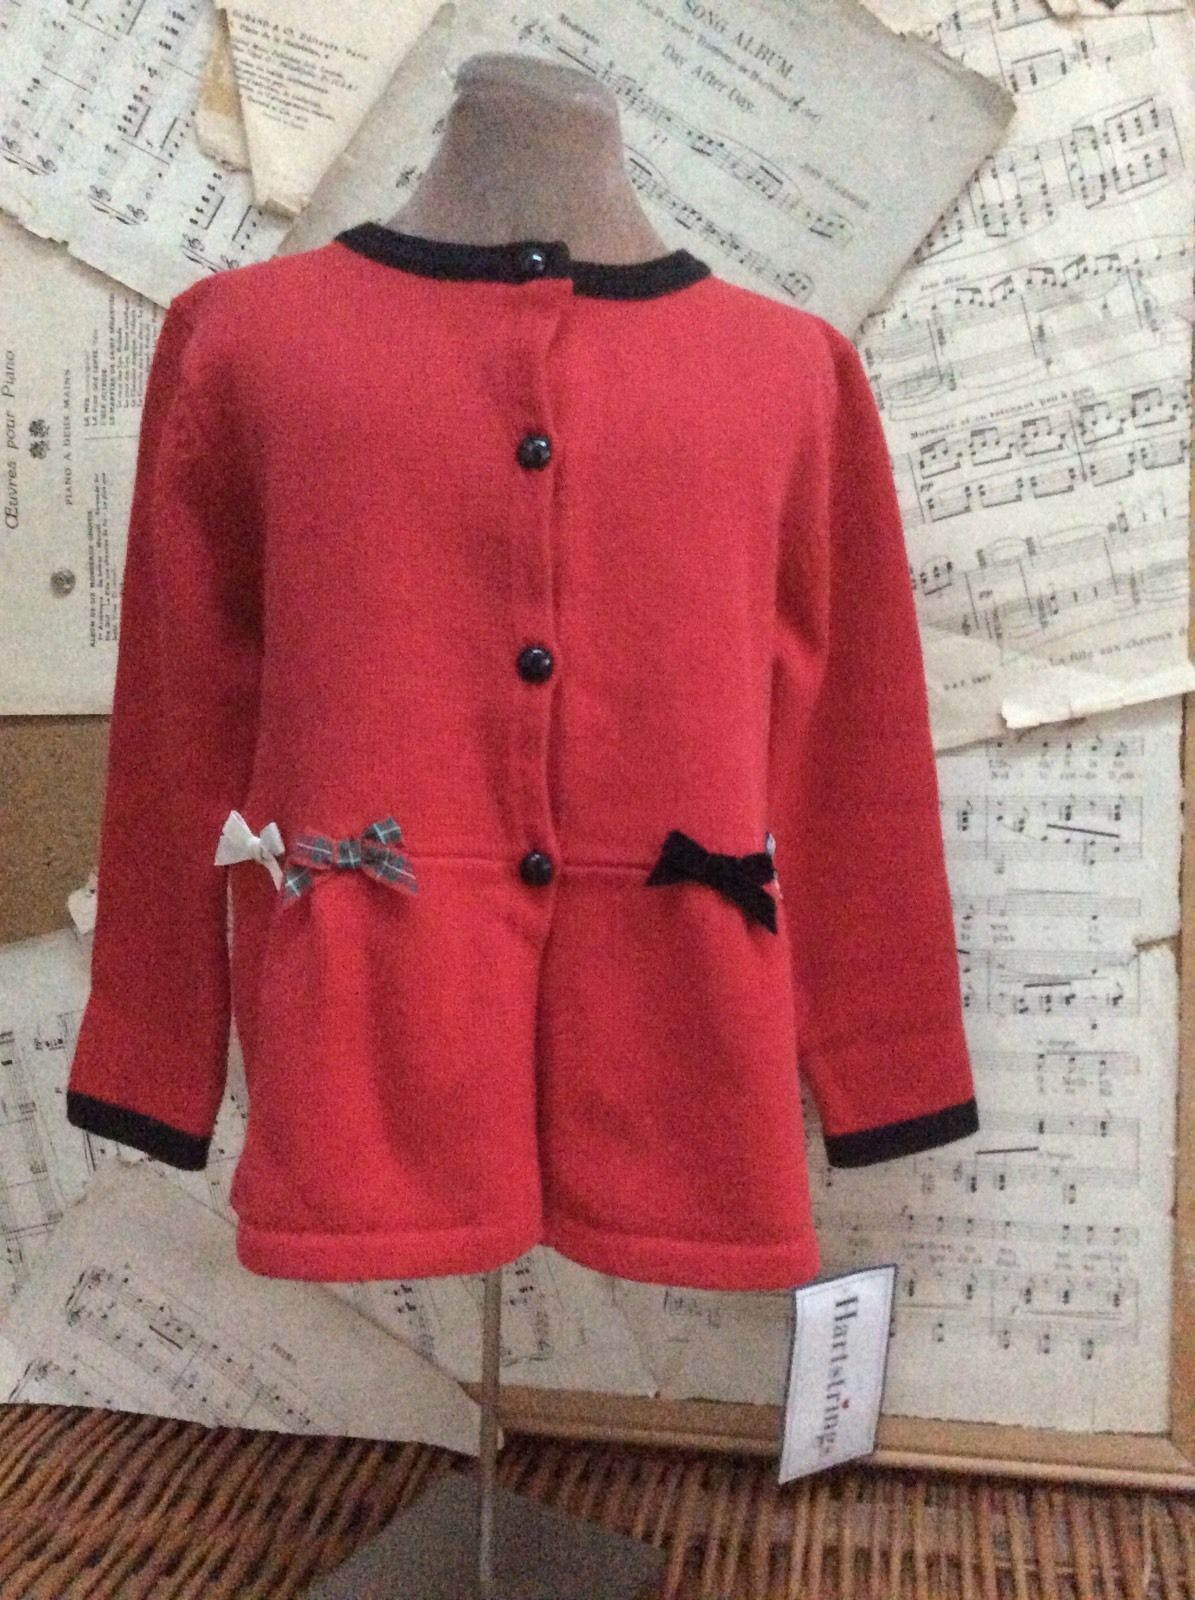 Hartstrings Red Cotton Cardigan Sweater and 23 similar items